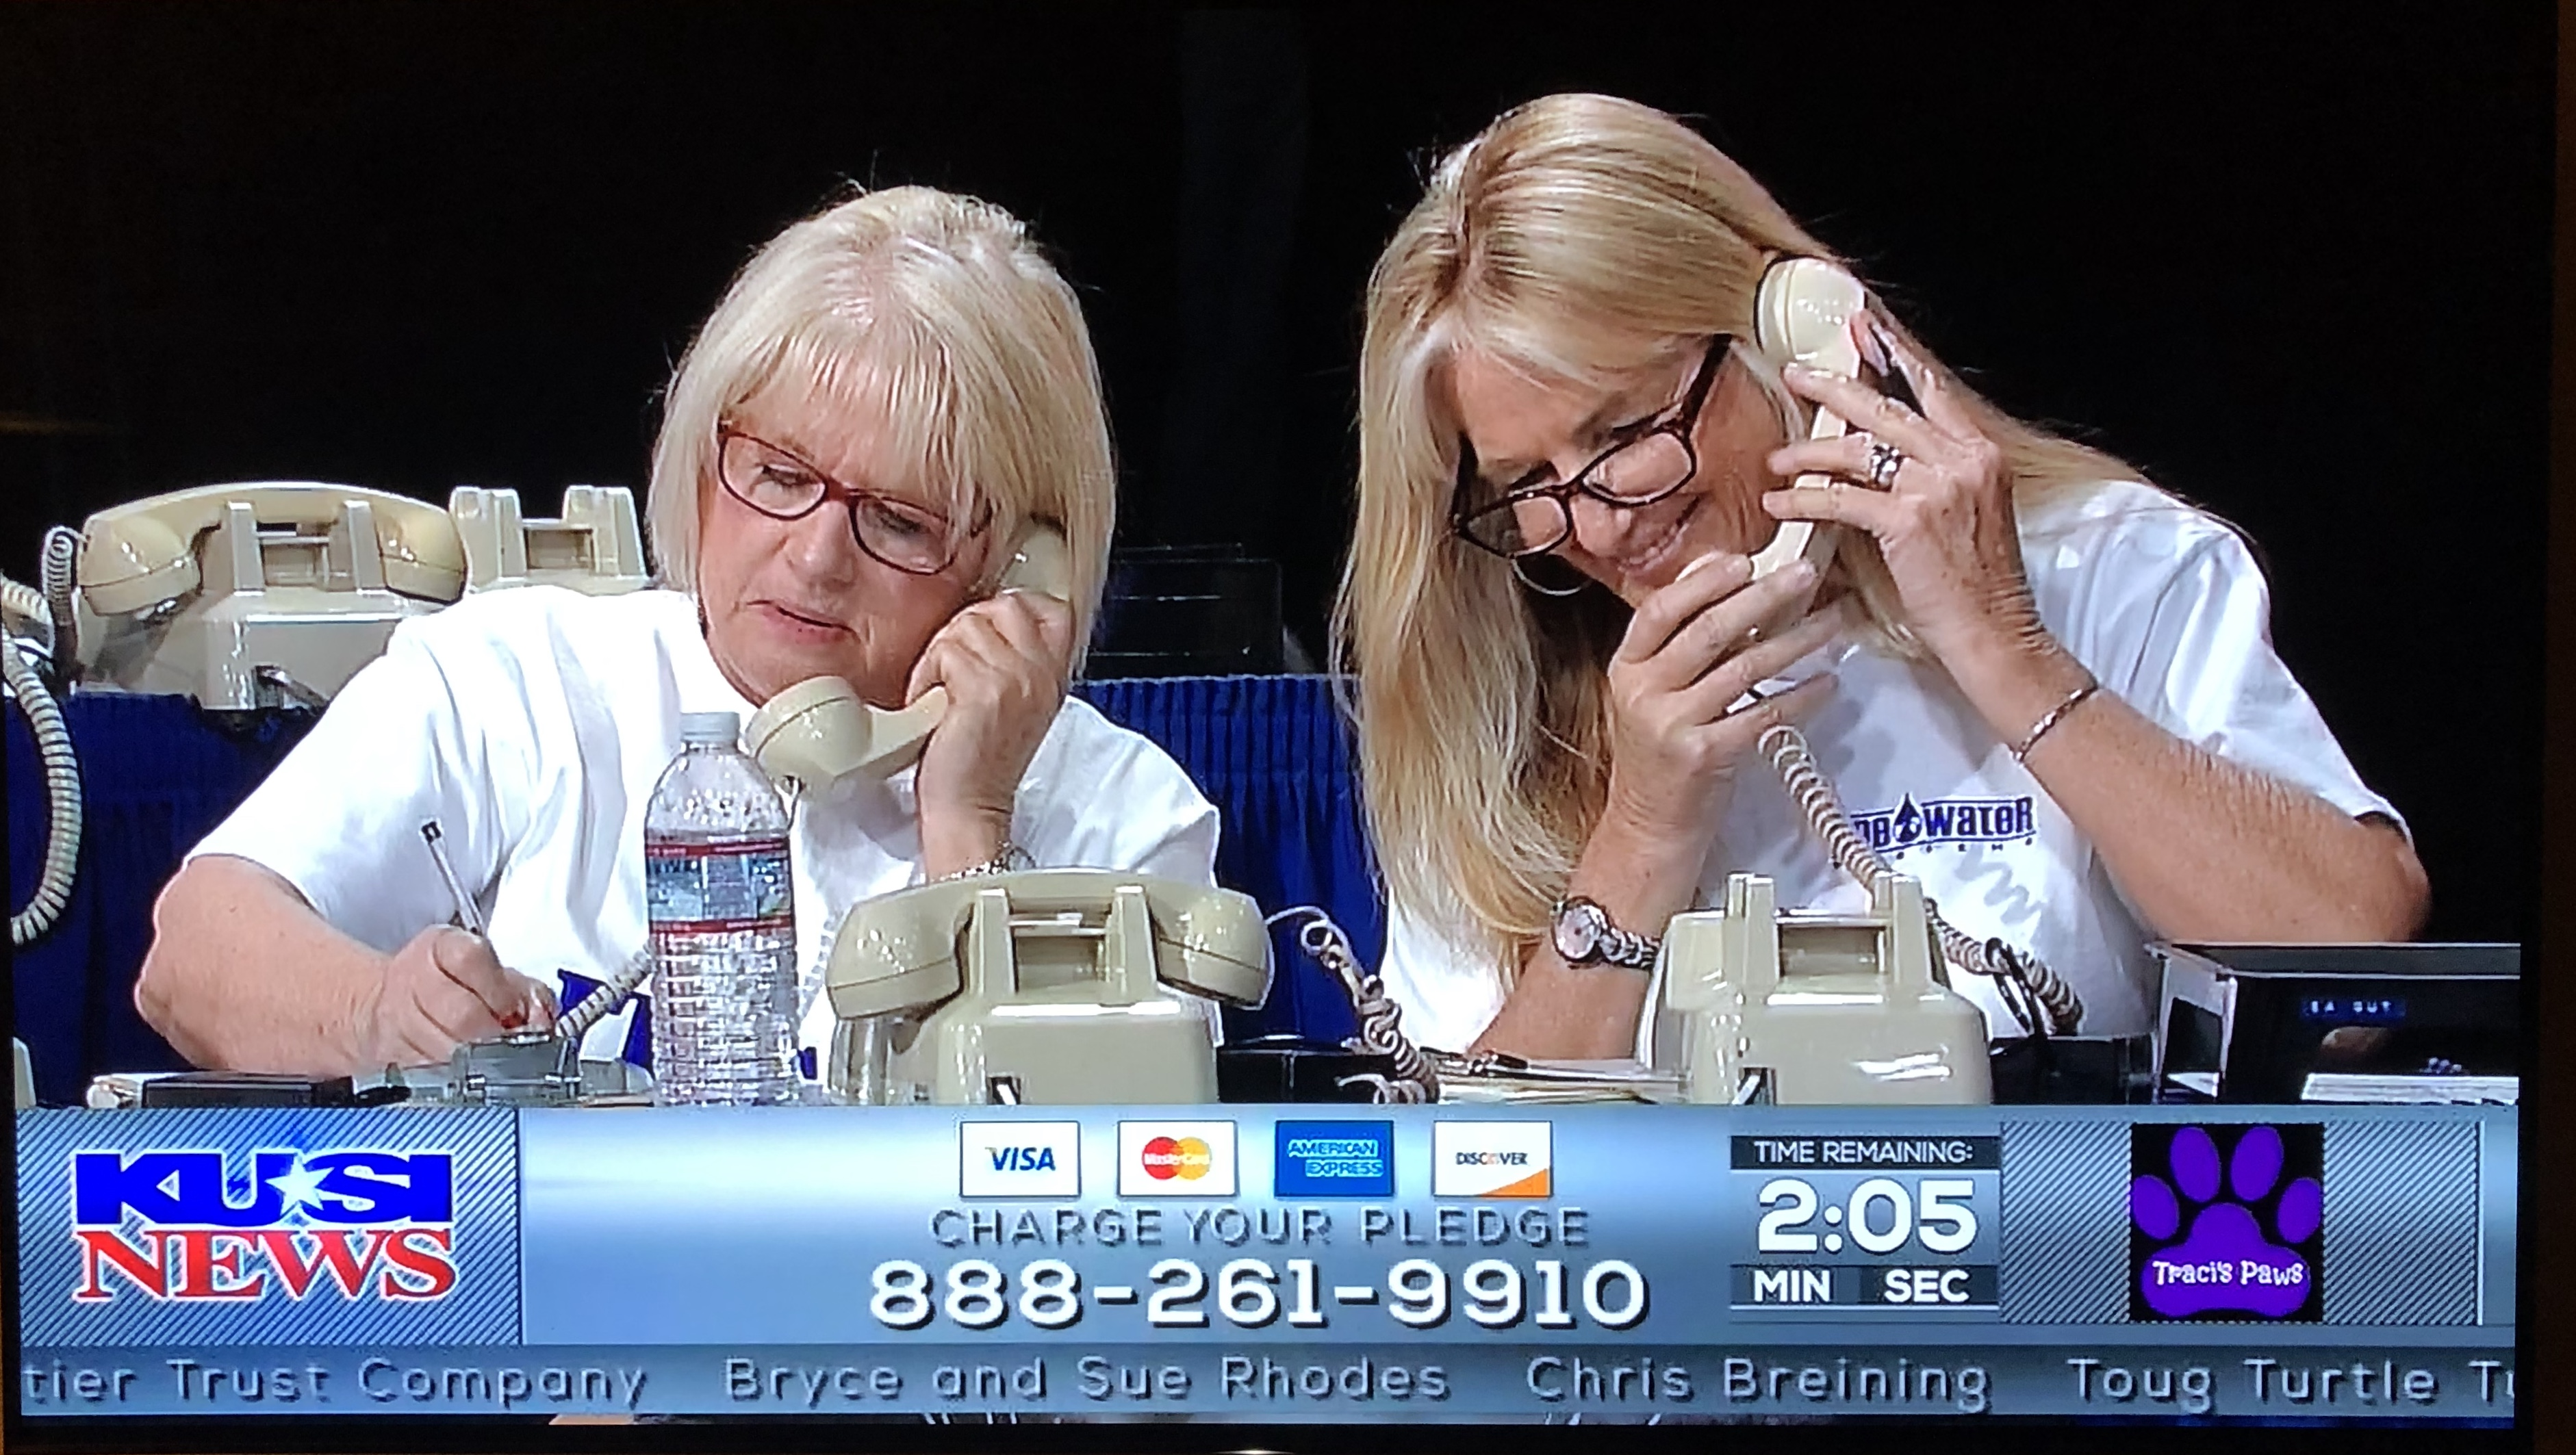 A couple of One Water Systems ladies answering phones and taking donations